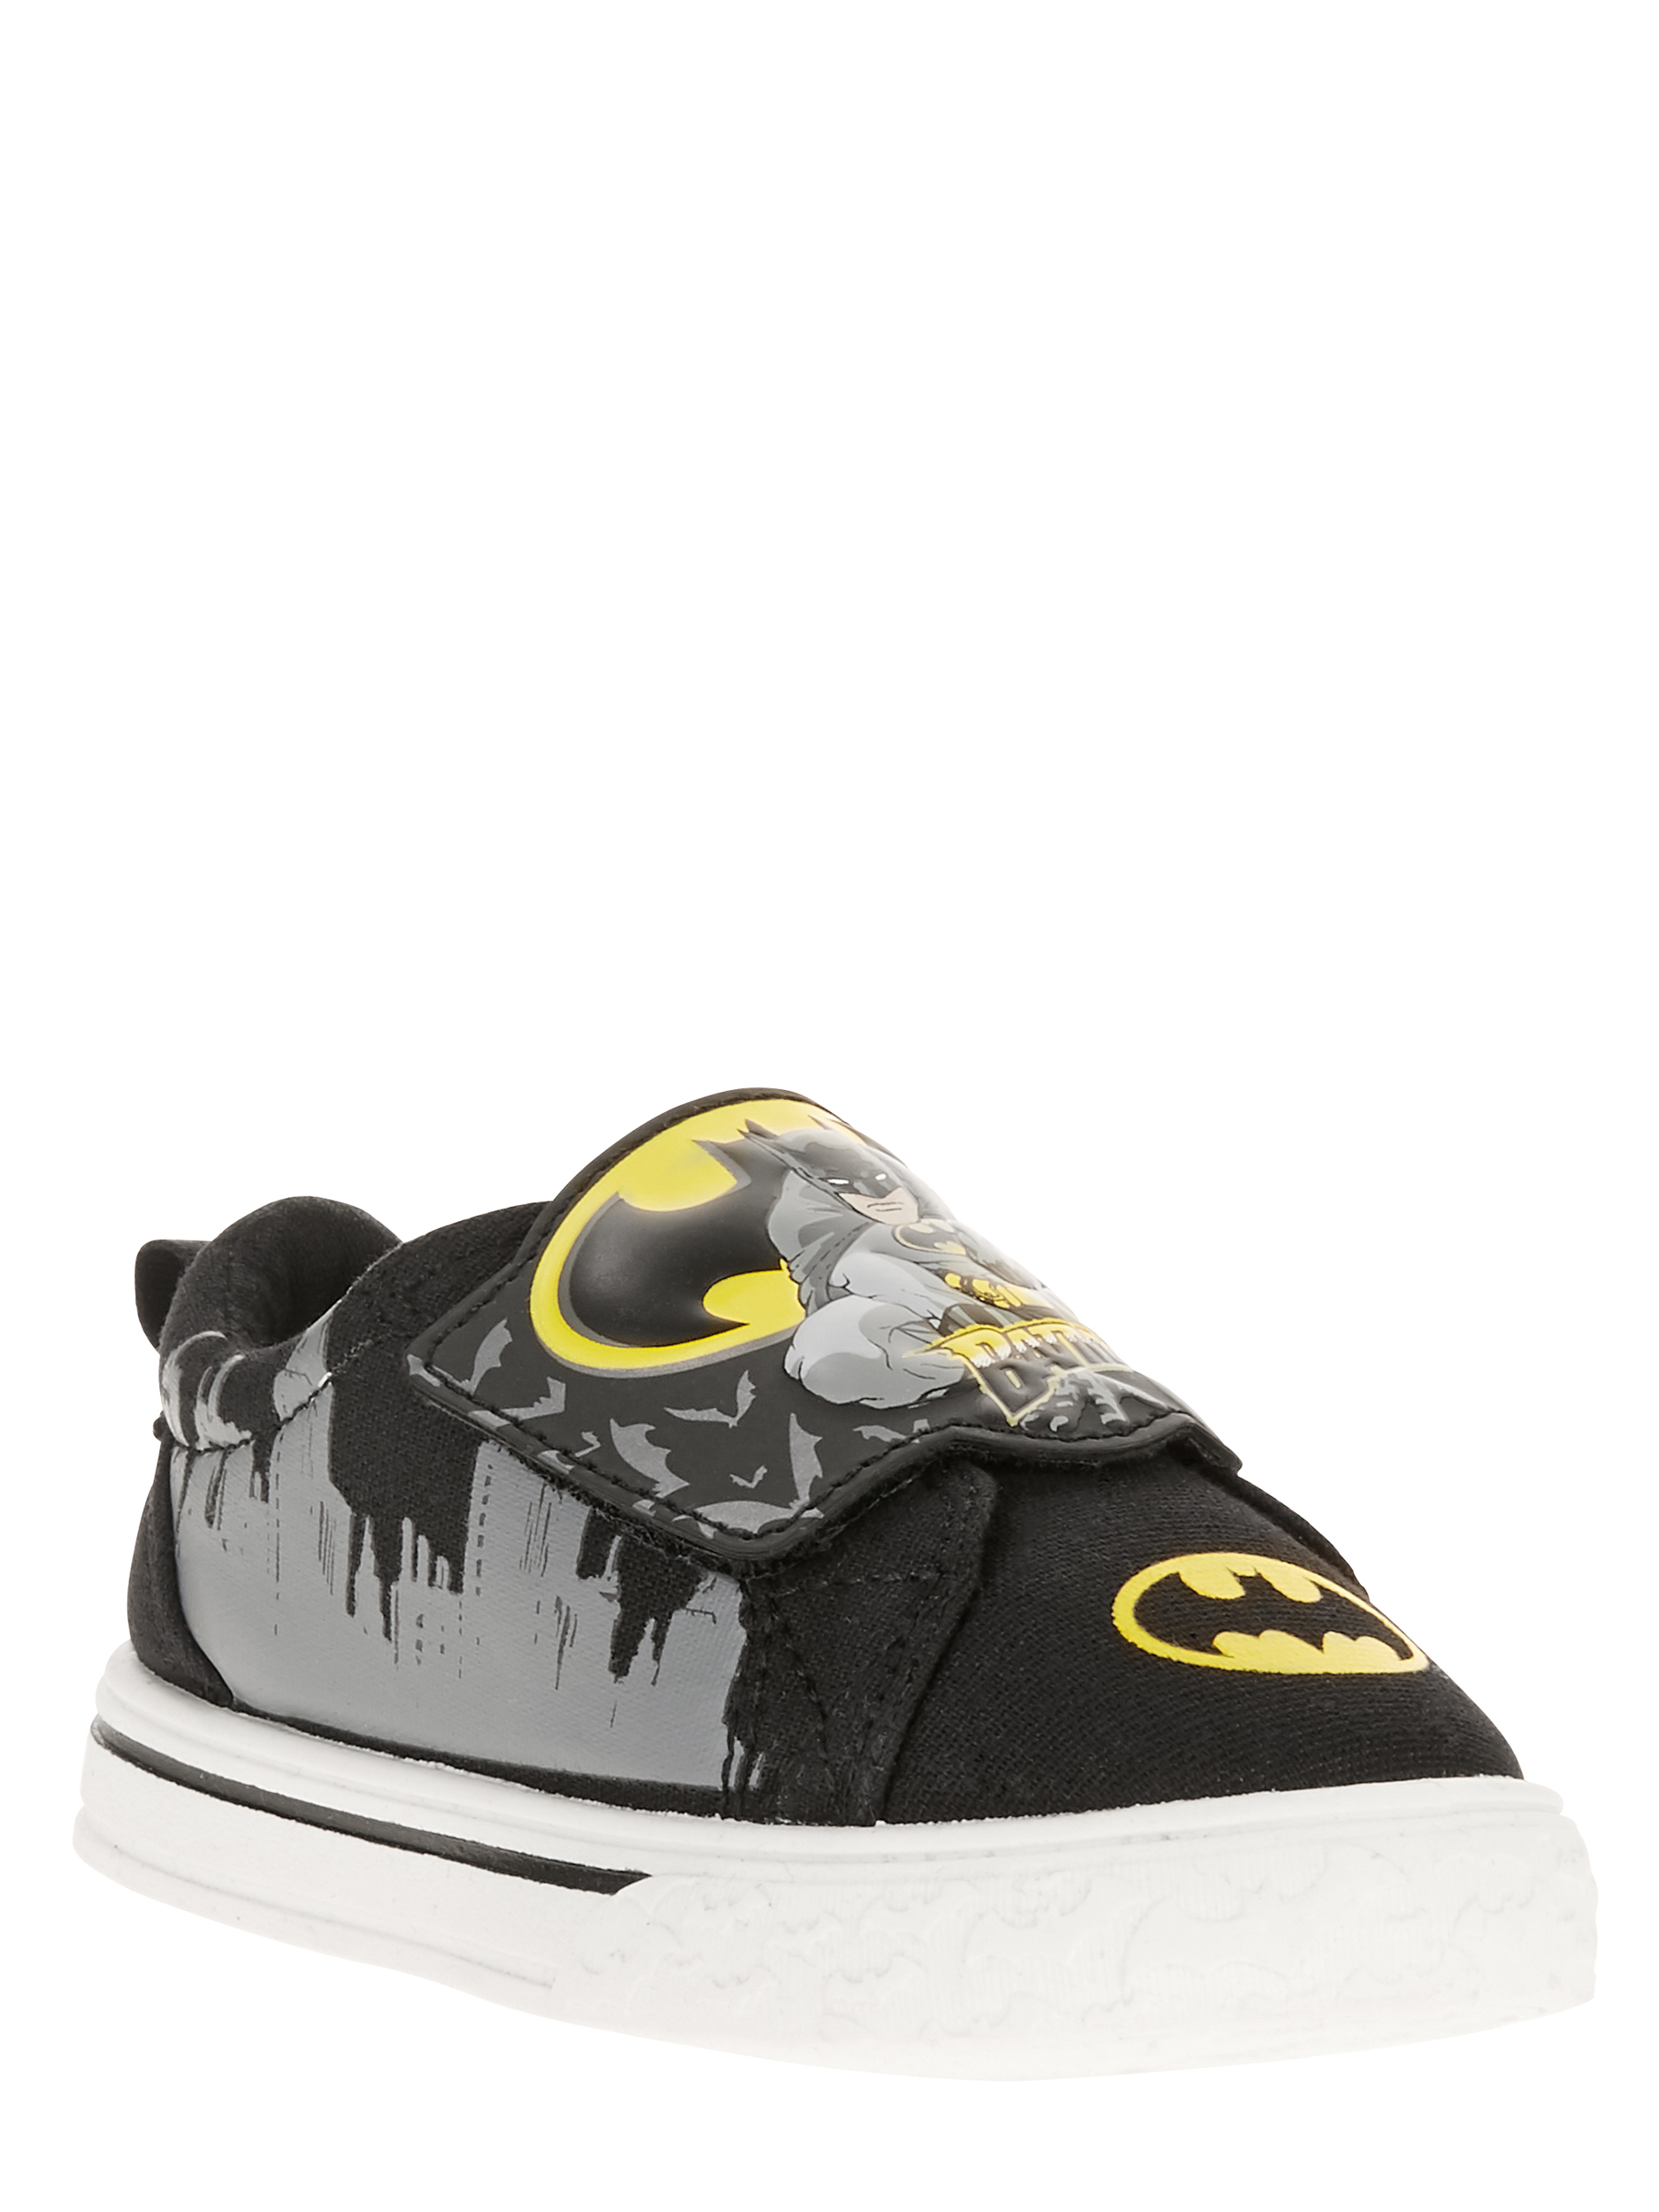 Batman Toddler Boys' Casual Sneaker